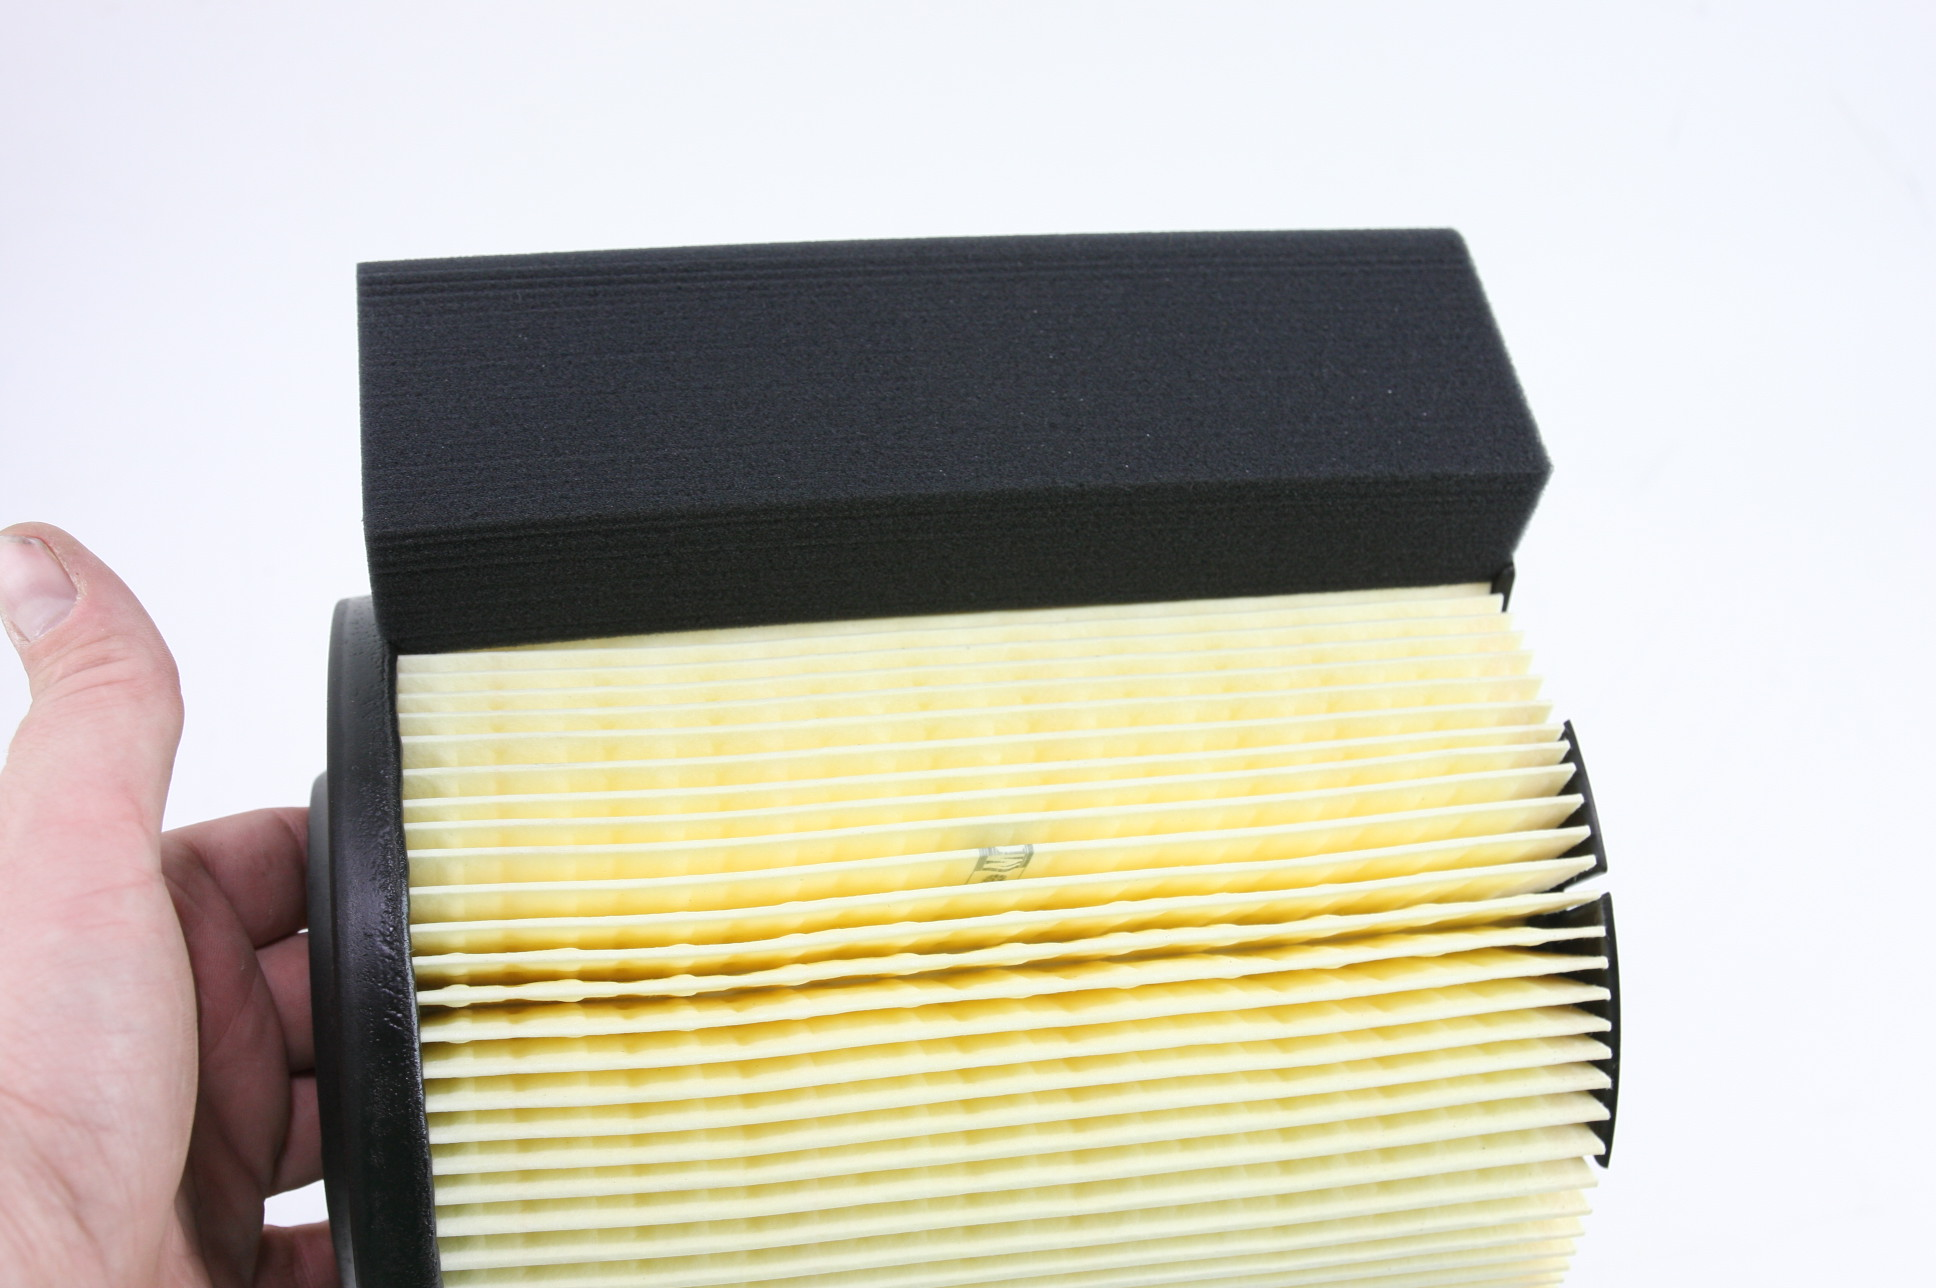 New OEM 6 Pack Motorcraft FA1927 Ford HC3Z9601A Powerstroke Diesel Air Filter - image 8